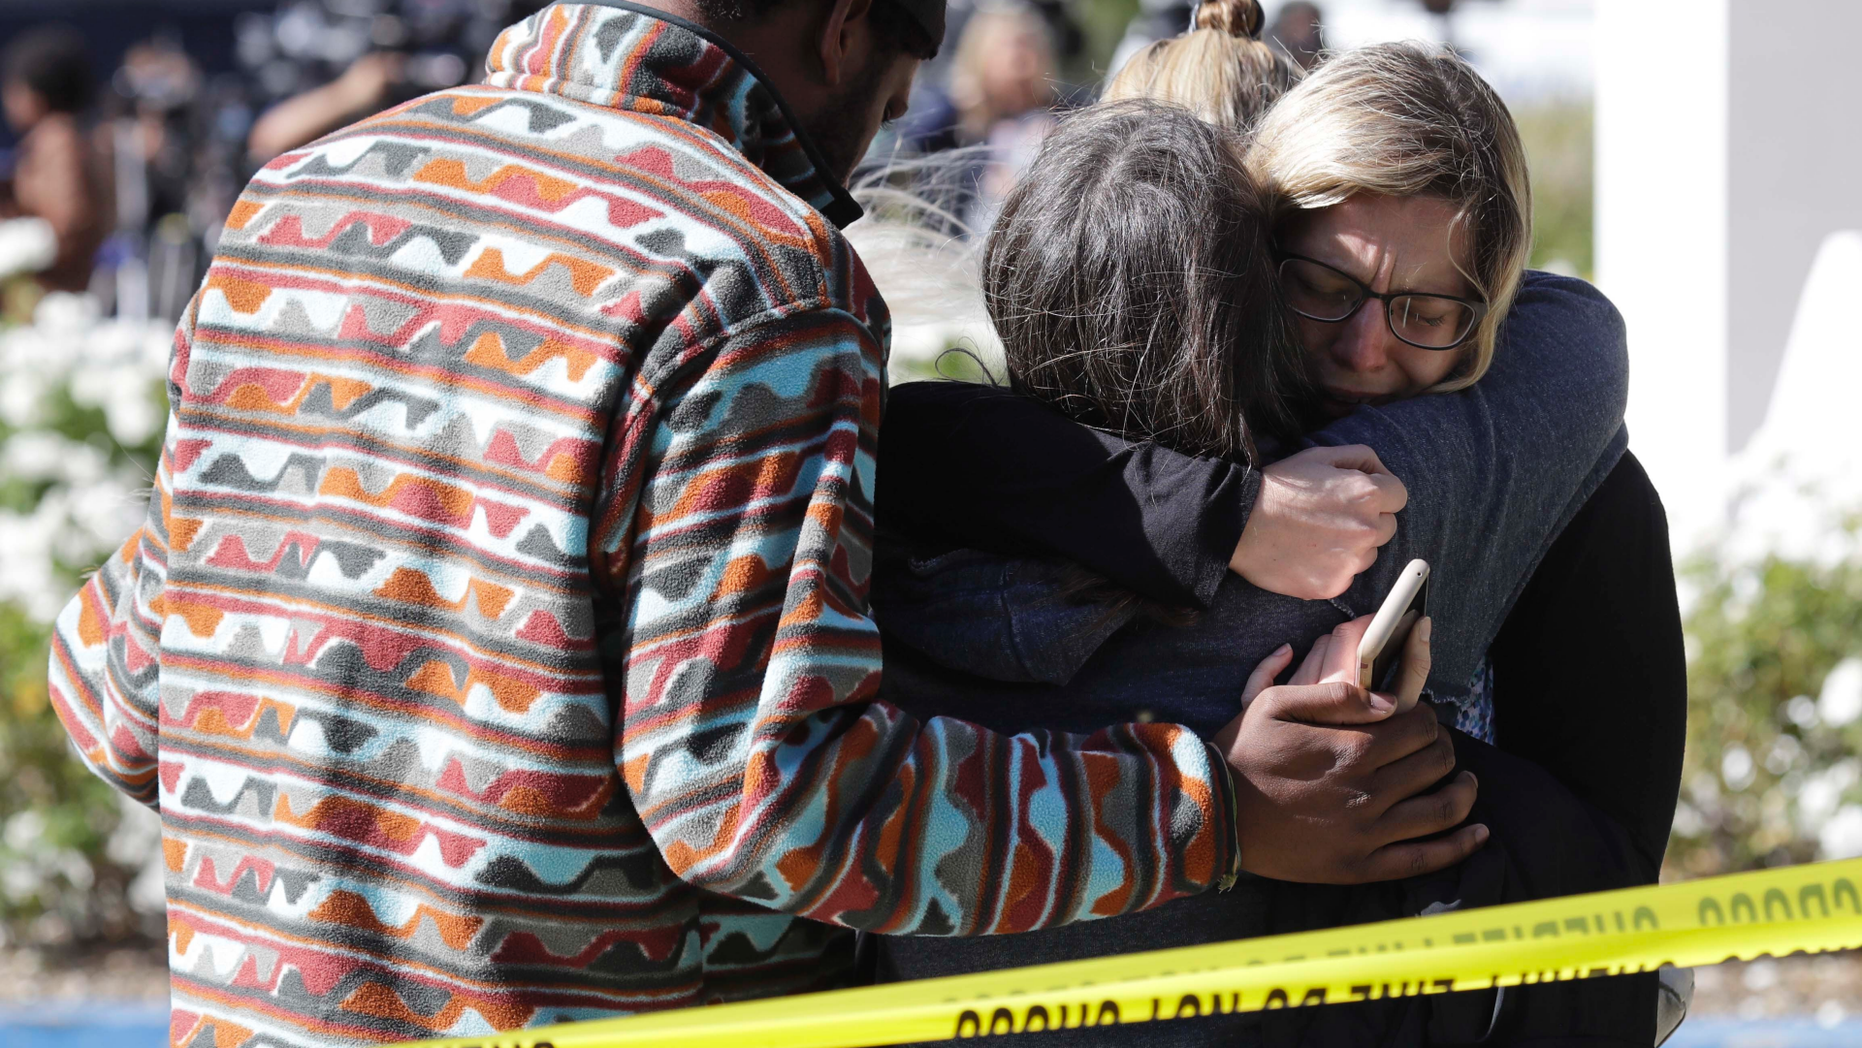 Mourners embrace outside of the Thousand Oaks Teen Center, where relatives and friends gathered in the aftermath of a mass shooting, Thursday, Nov. 8, 2018, in Thousand Oaks, Calif. Multiple people were shot and killed late Wednesday by a gunman who opened fire at the Borderline Bar & Grill, which was holding a weekly country music dance night for college students. (AP Photo/Marcio Jose Sanchez)